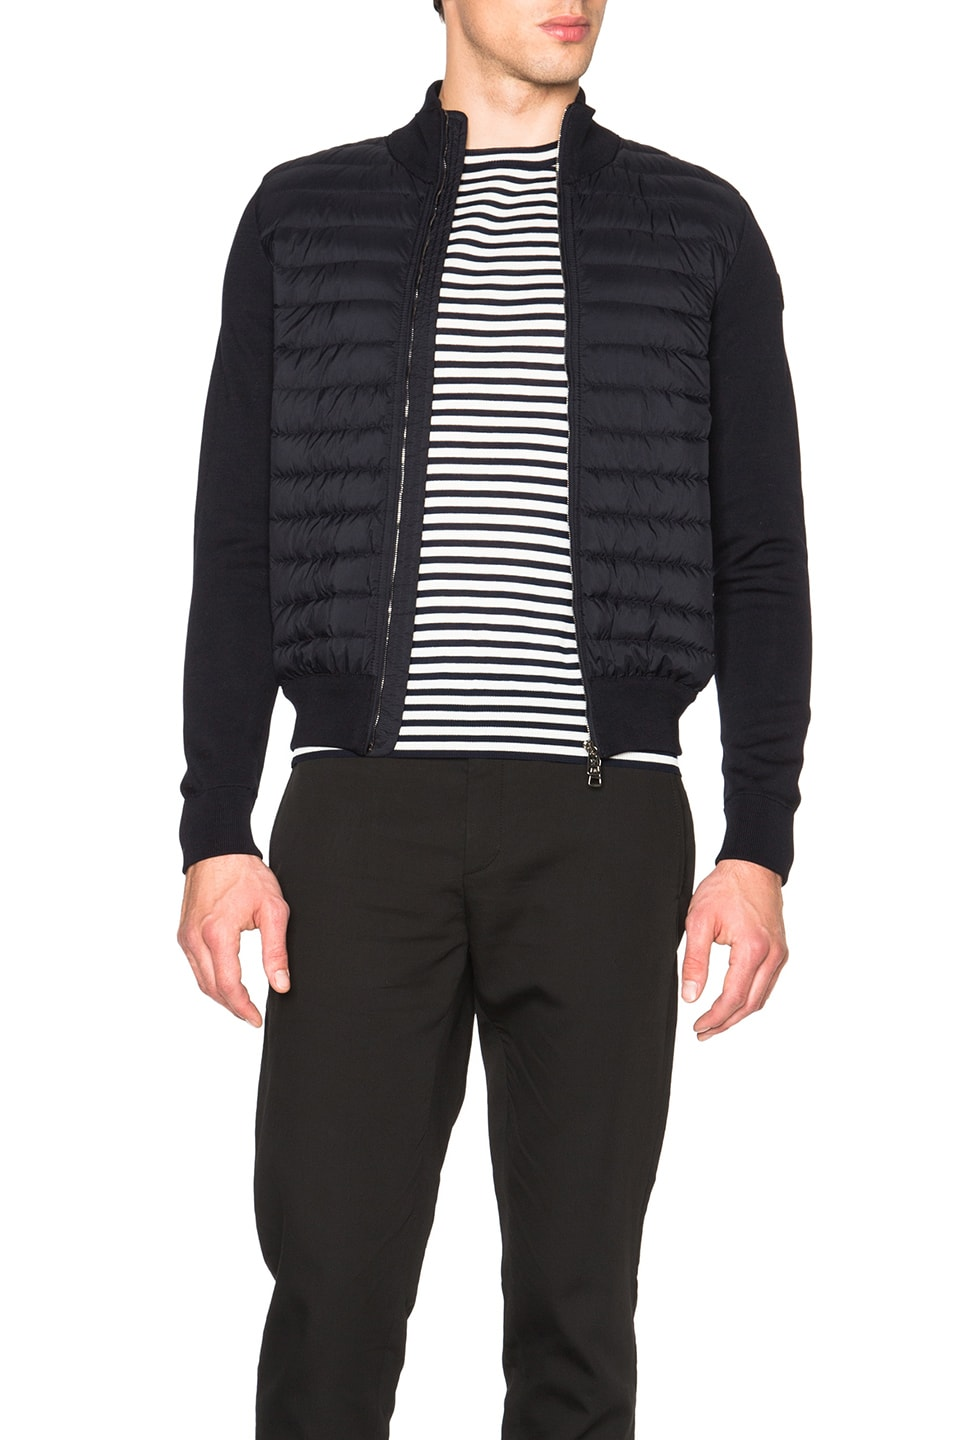 Find mens baseball cardigan at ShopStyle. Shop the latest collection of mens baseball cardigan from the most popular stores - all in one place.